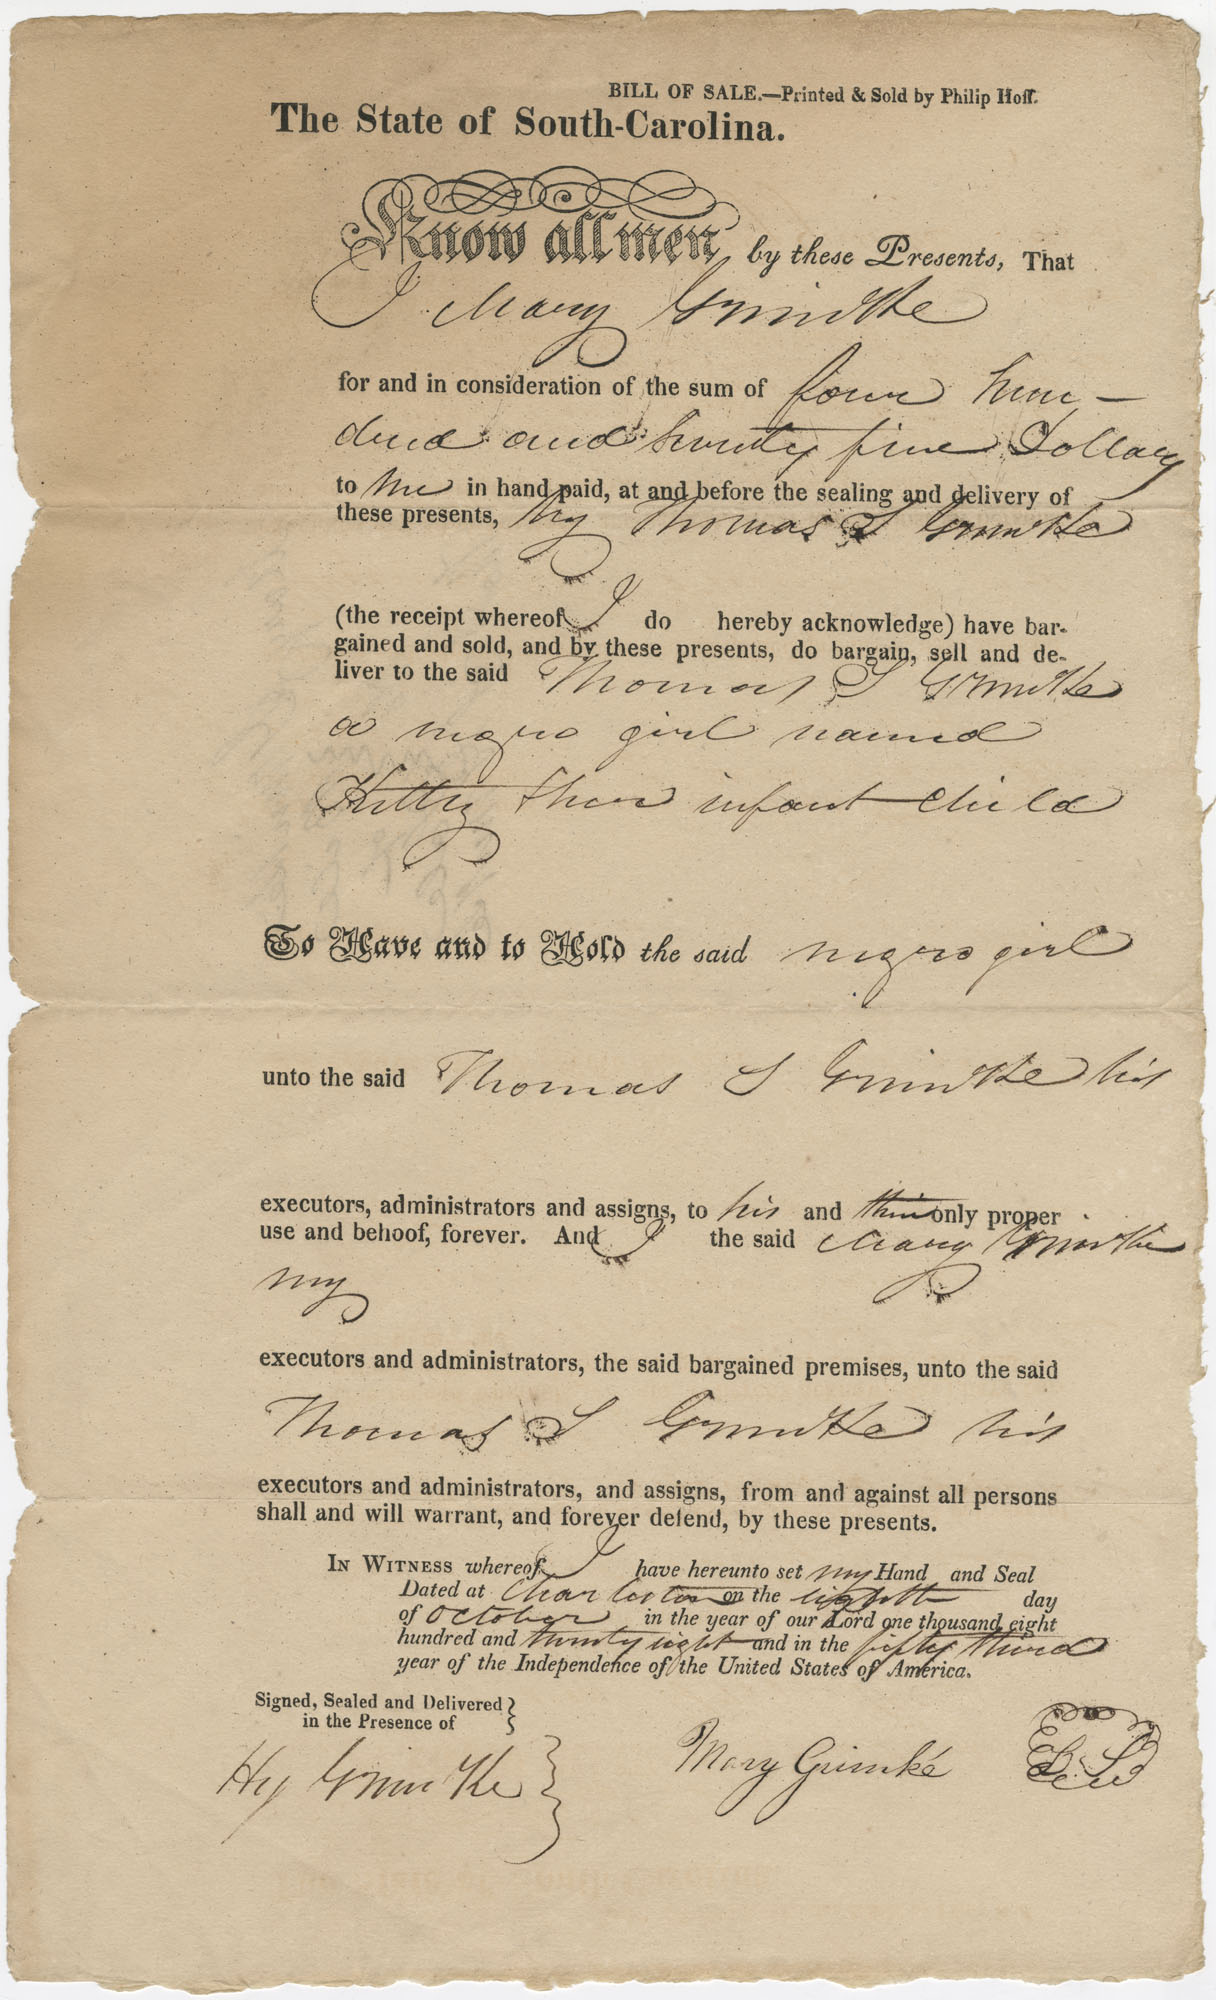 Bill of Sale to Thomas S. Grimke for the purchase of a slave named Hitty, October 8, 1828